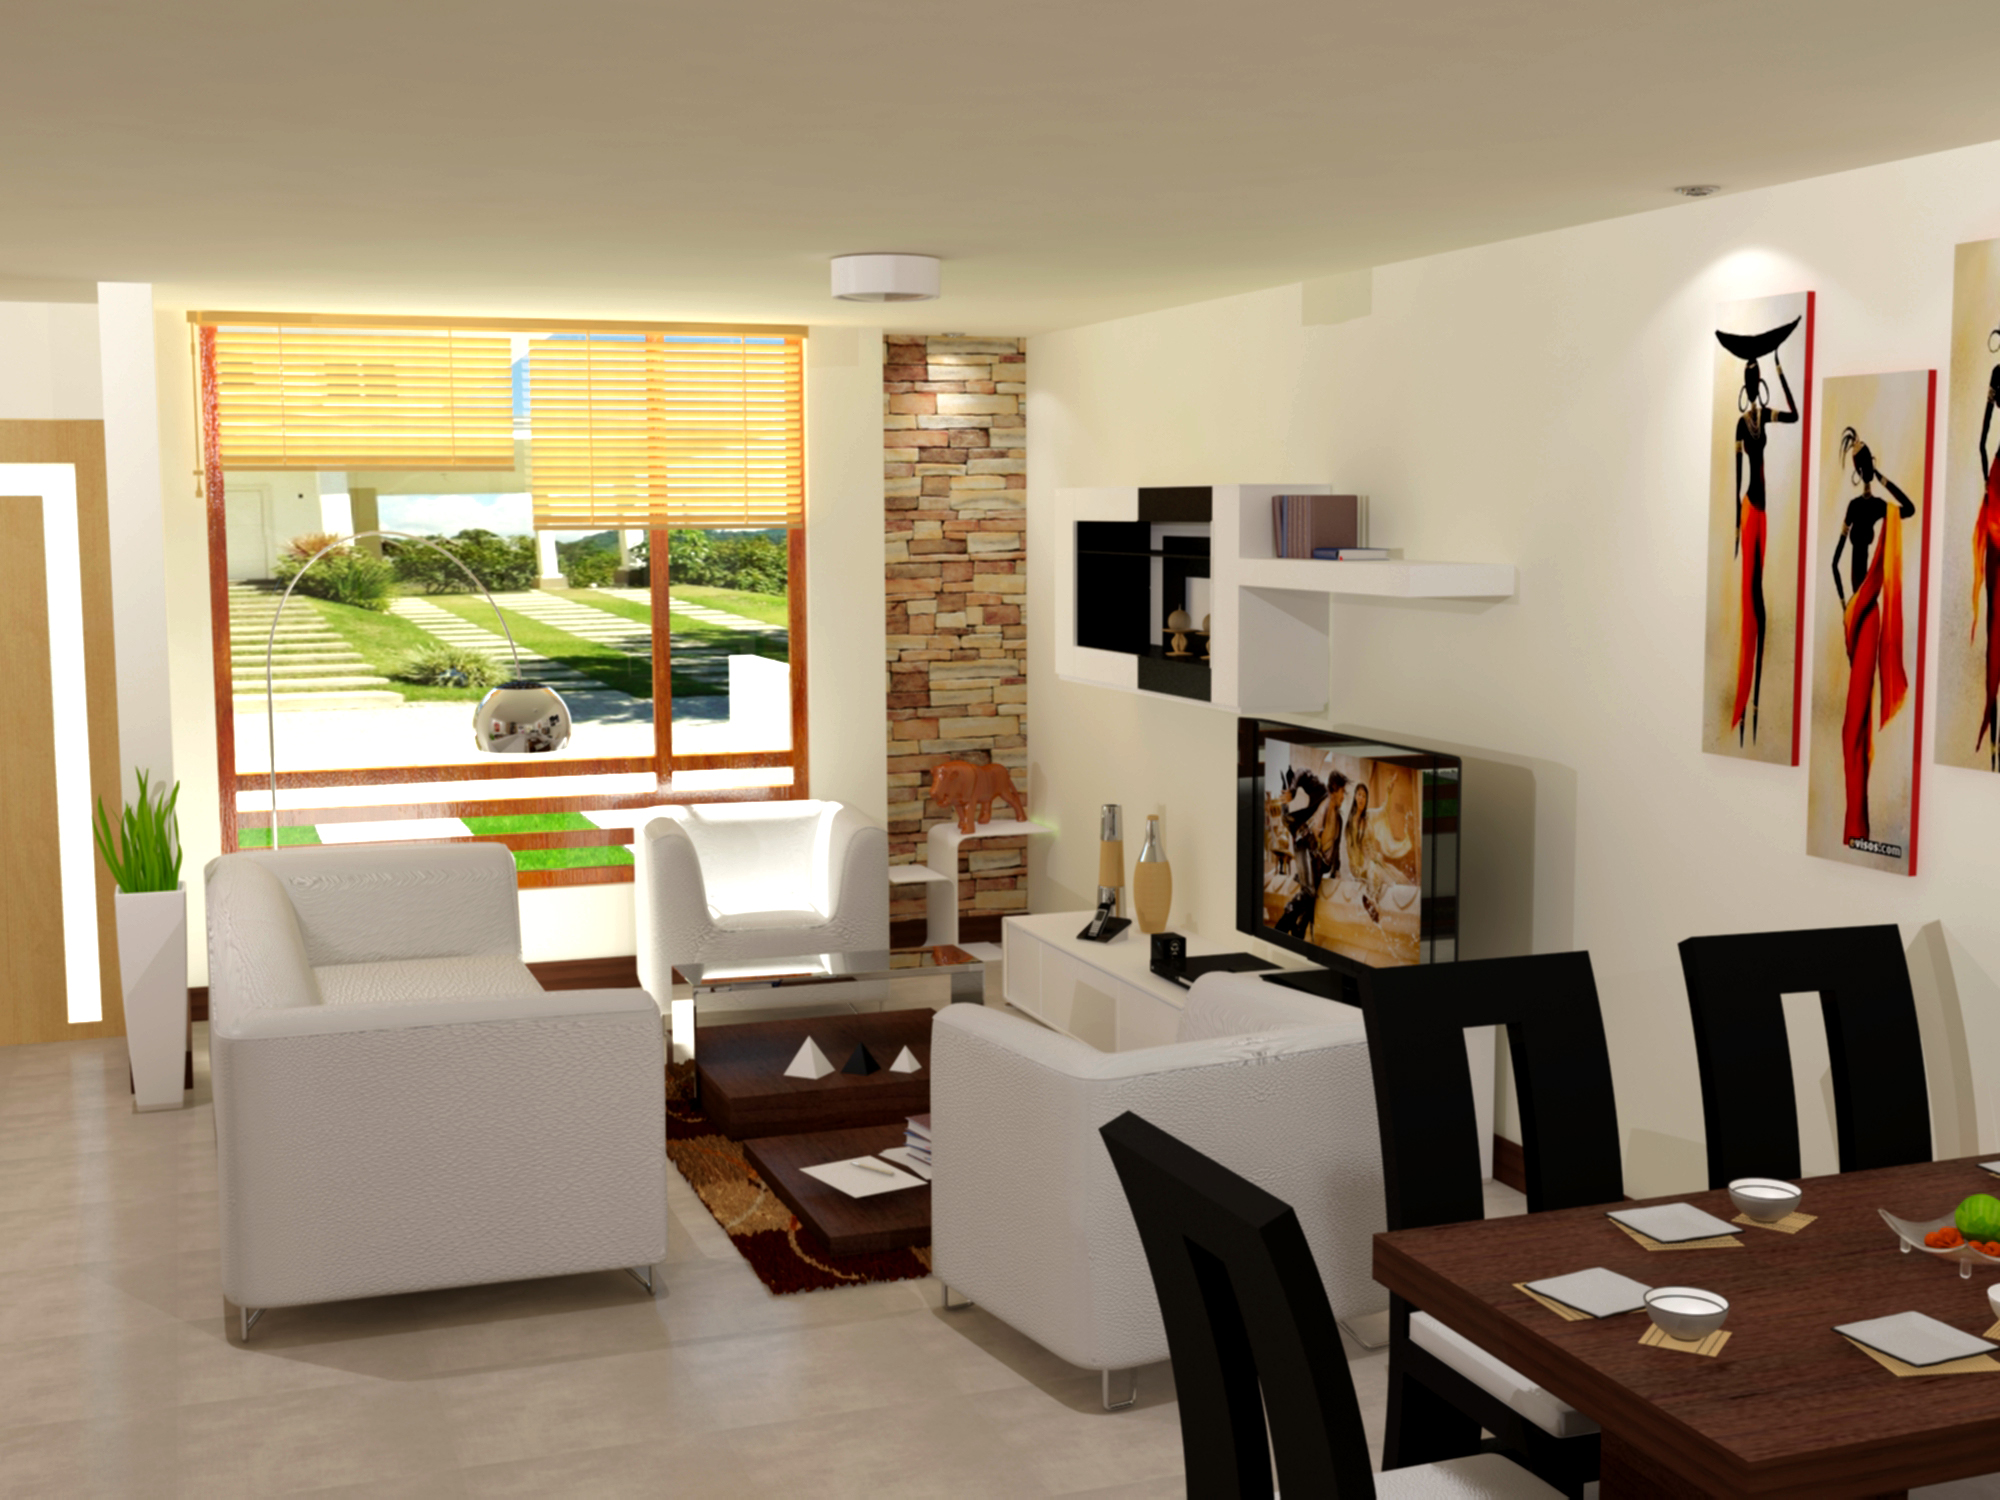 Como decorar una casa innovadoras ideas para ti - Ideas para decorar casas pequenas ...